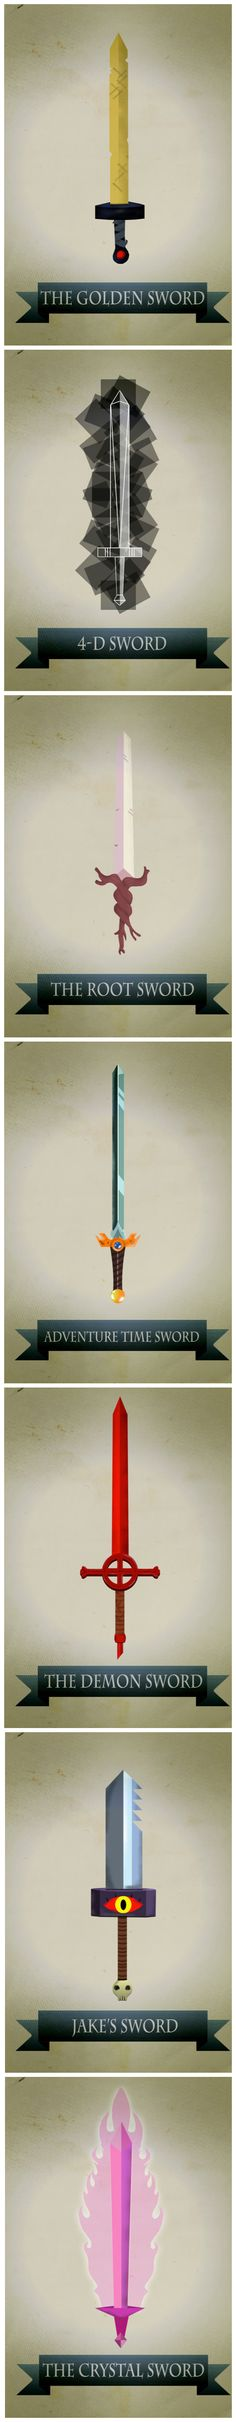 Swords of Adventure Time | by Harshness; Posters available at his Etsy